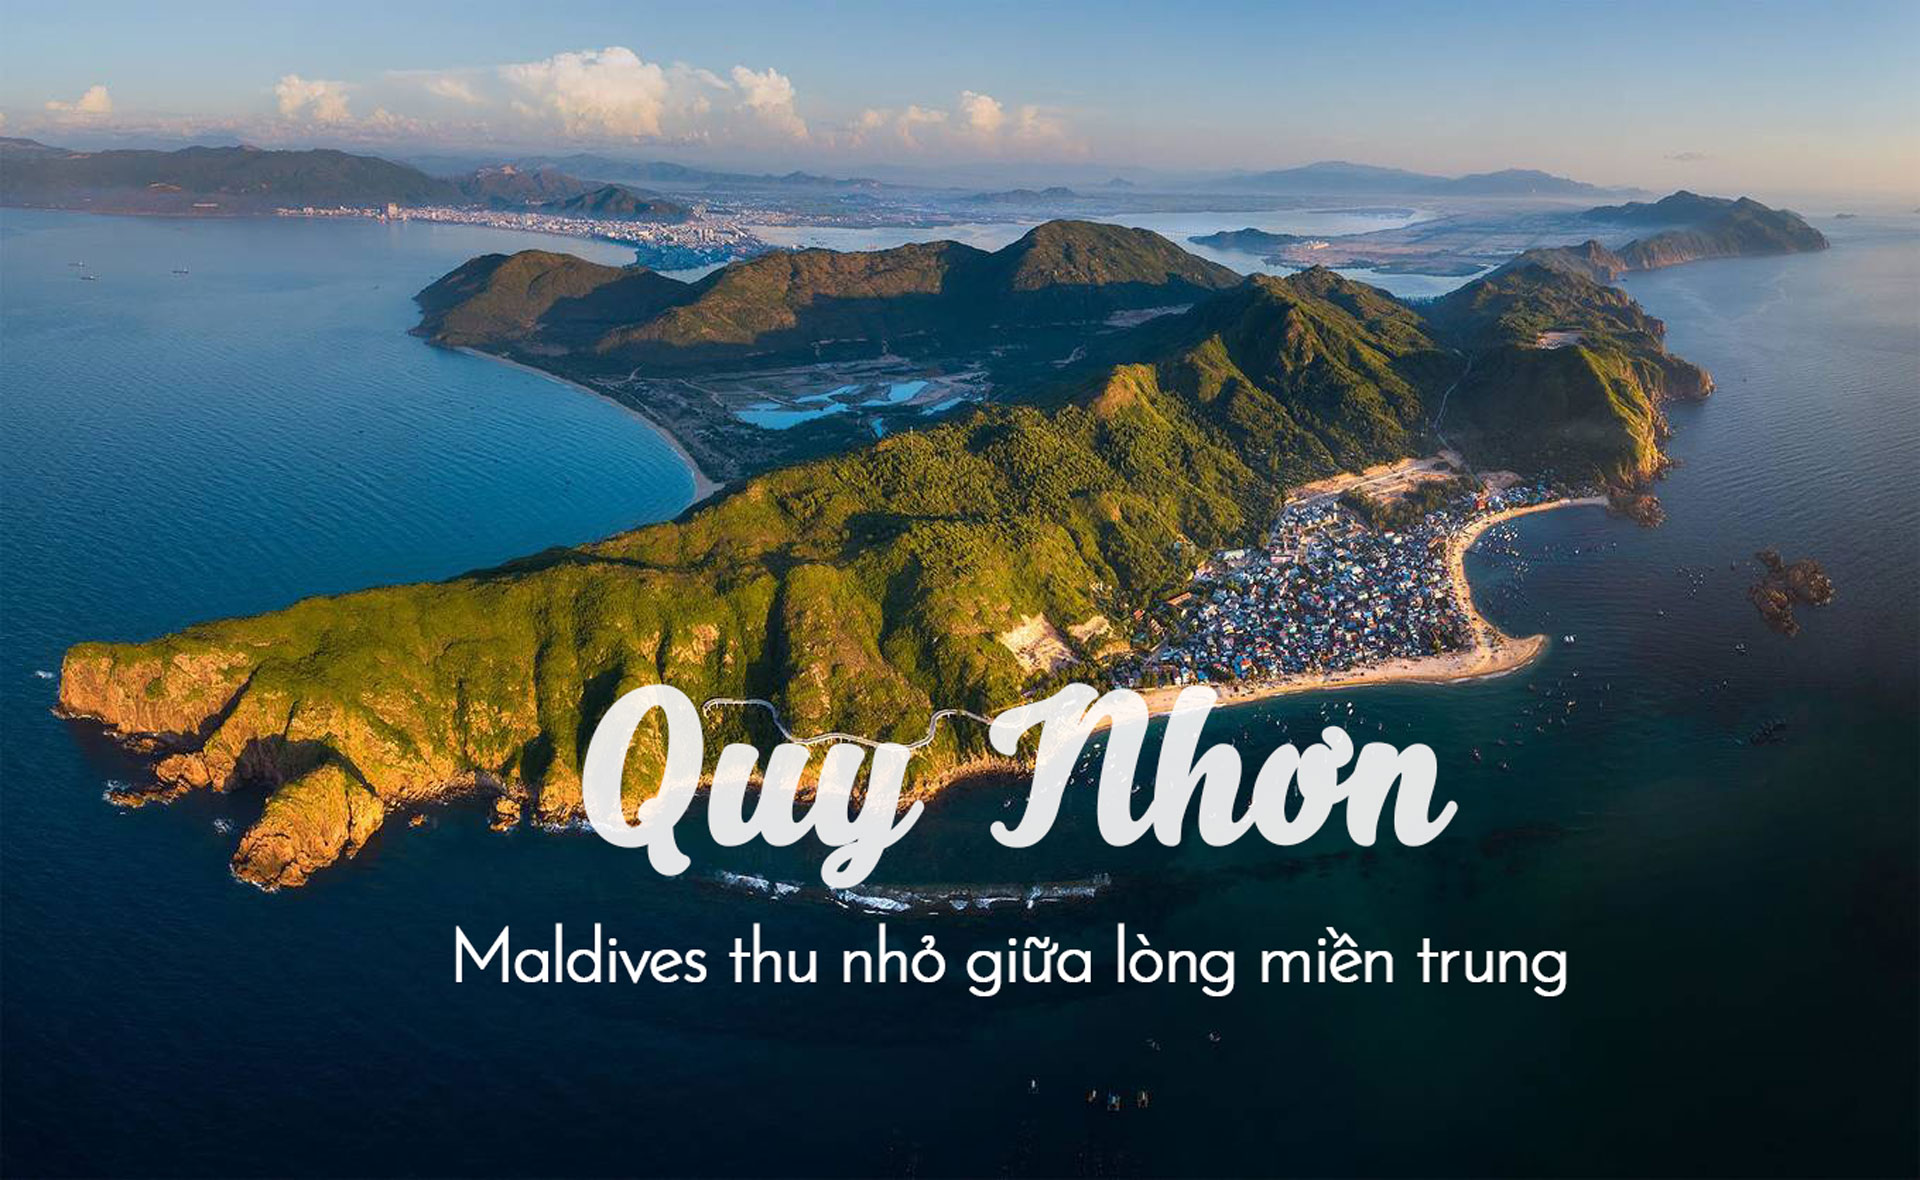 /files/images/comboquynhon/combo-quy-nhon.jpg